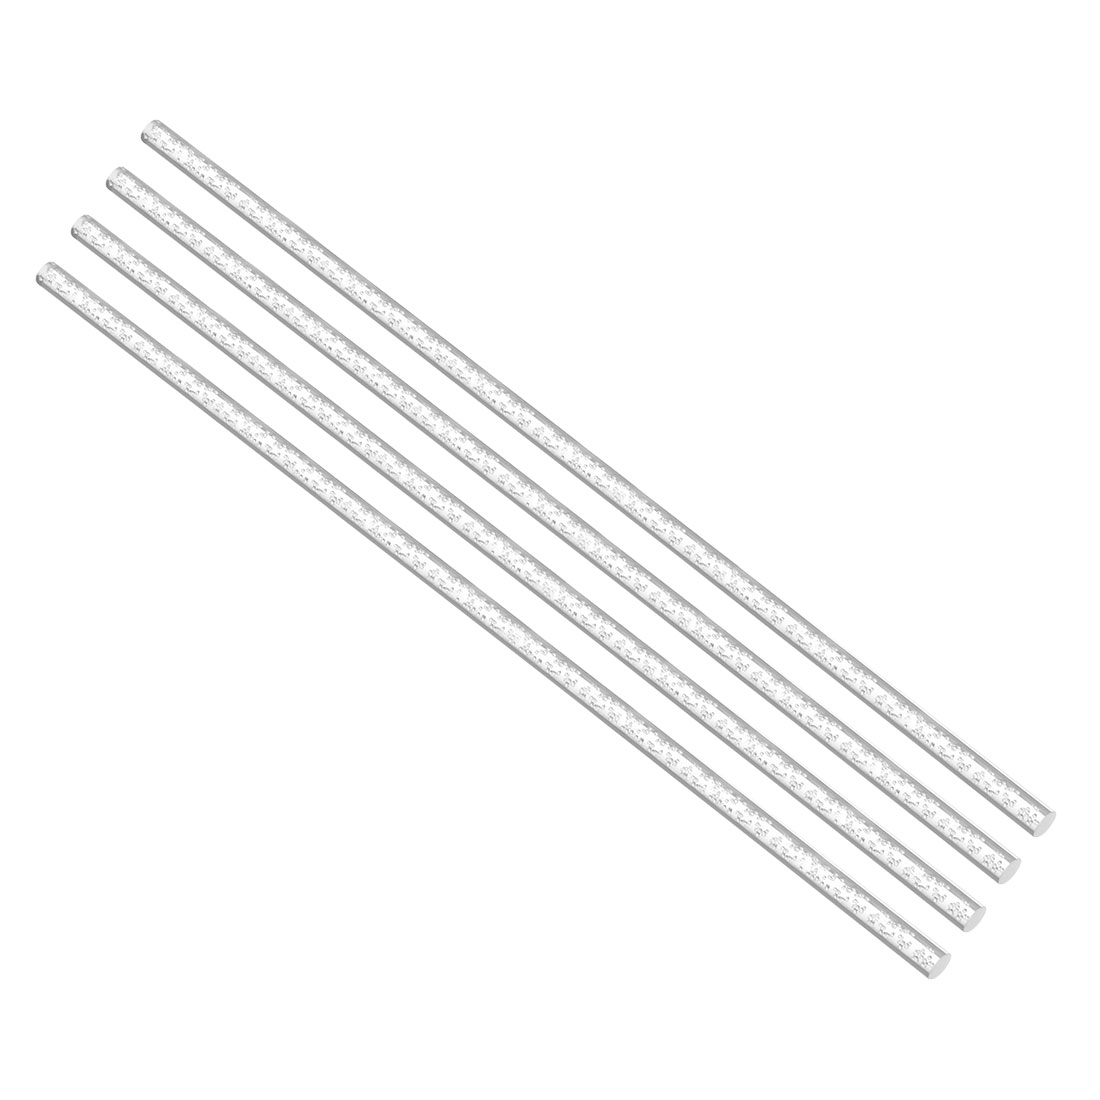 6mmx500mm Clear Round Bubble Solid Acrylic Round Rod PMMA Extruded Bar 4Pcs